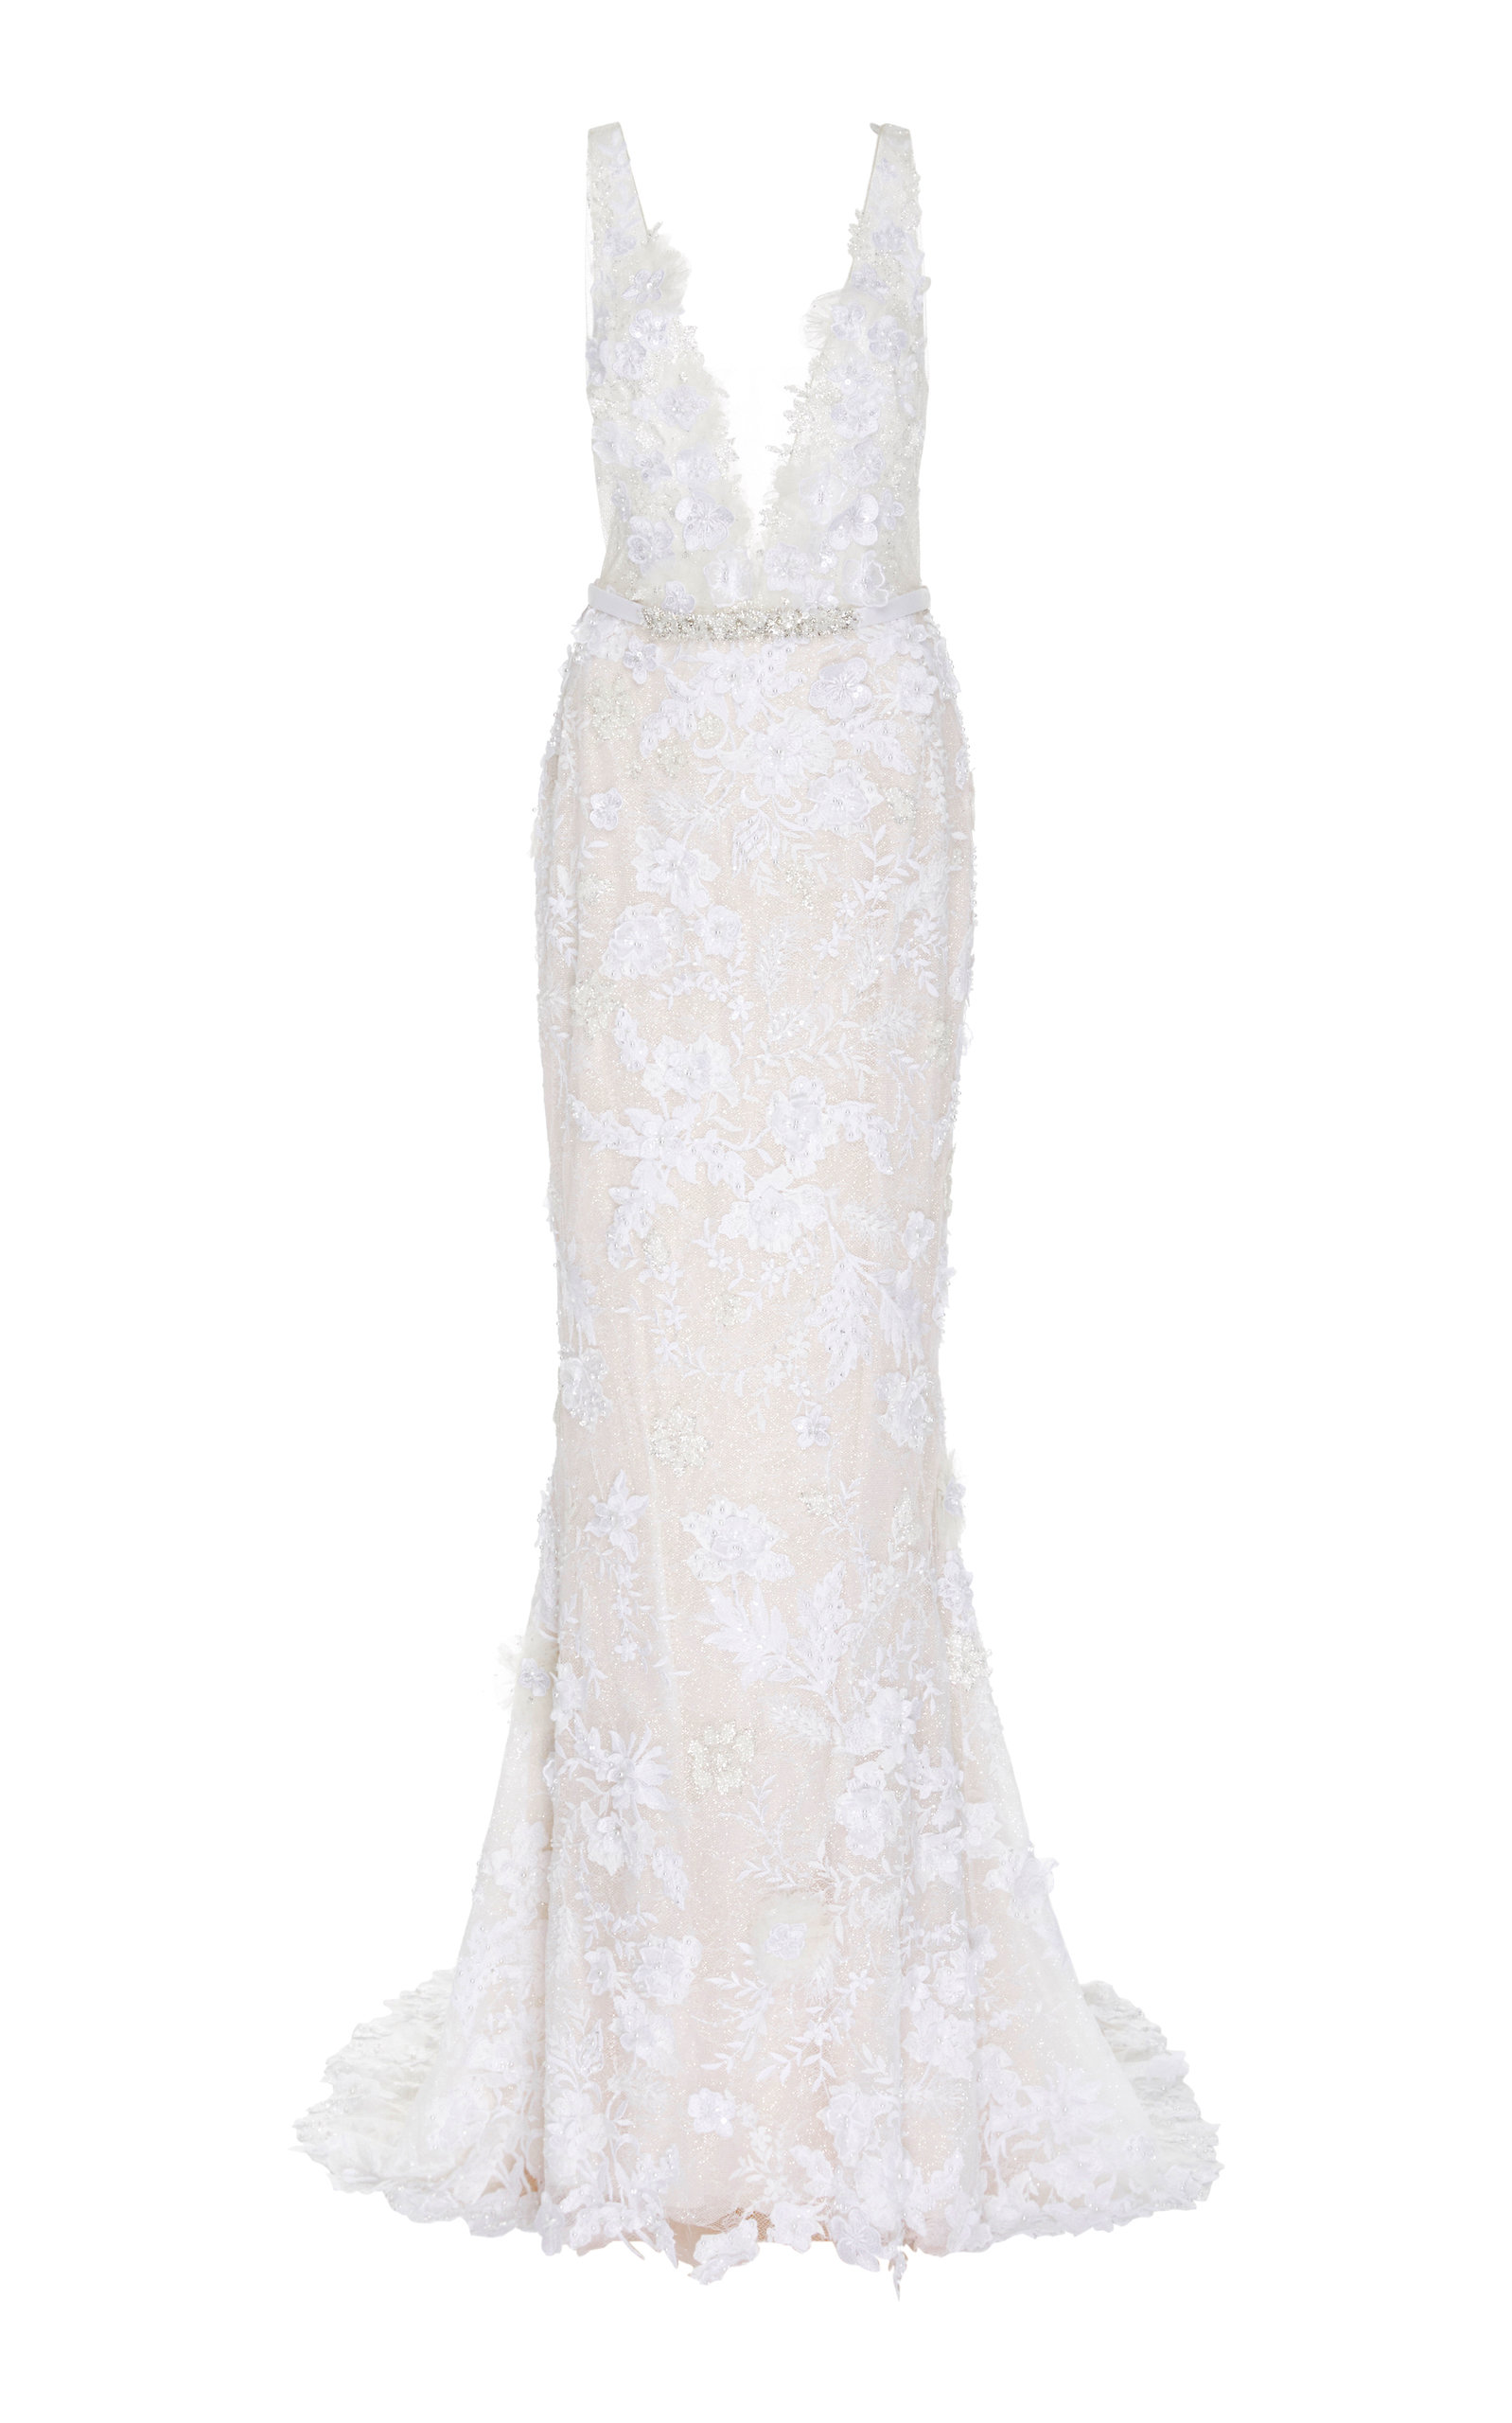 MIRA ZWILLINGER Dara Open-Back Chantilly Lace Sheath Gown in White